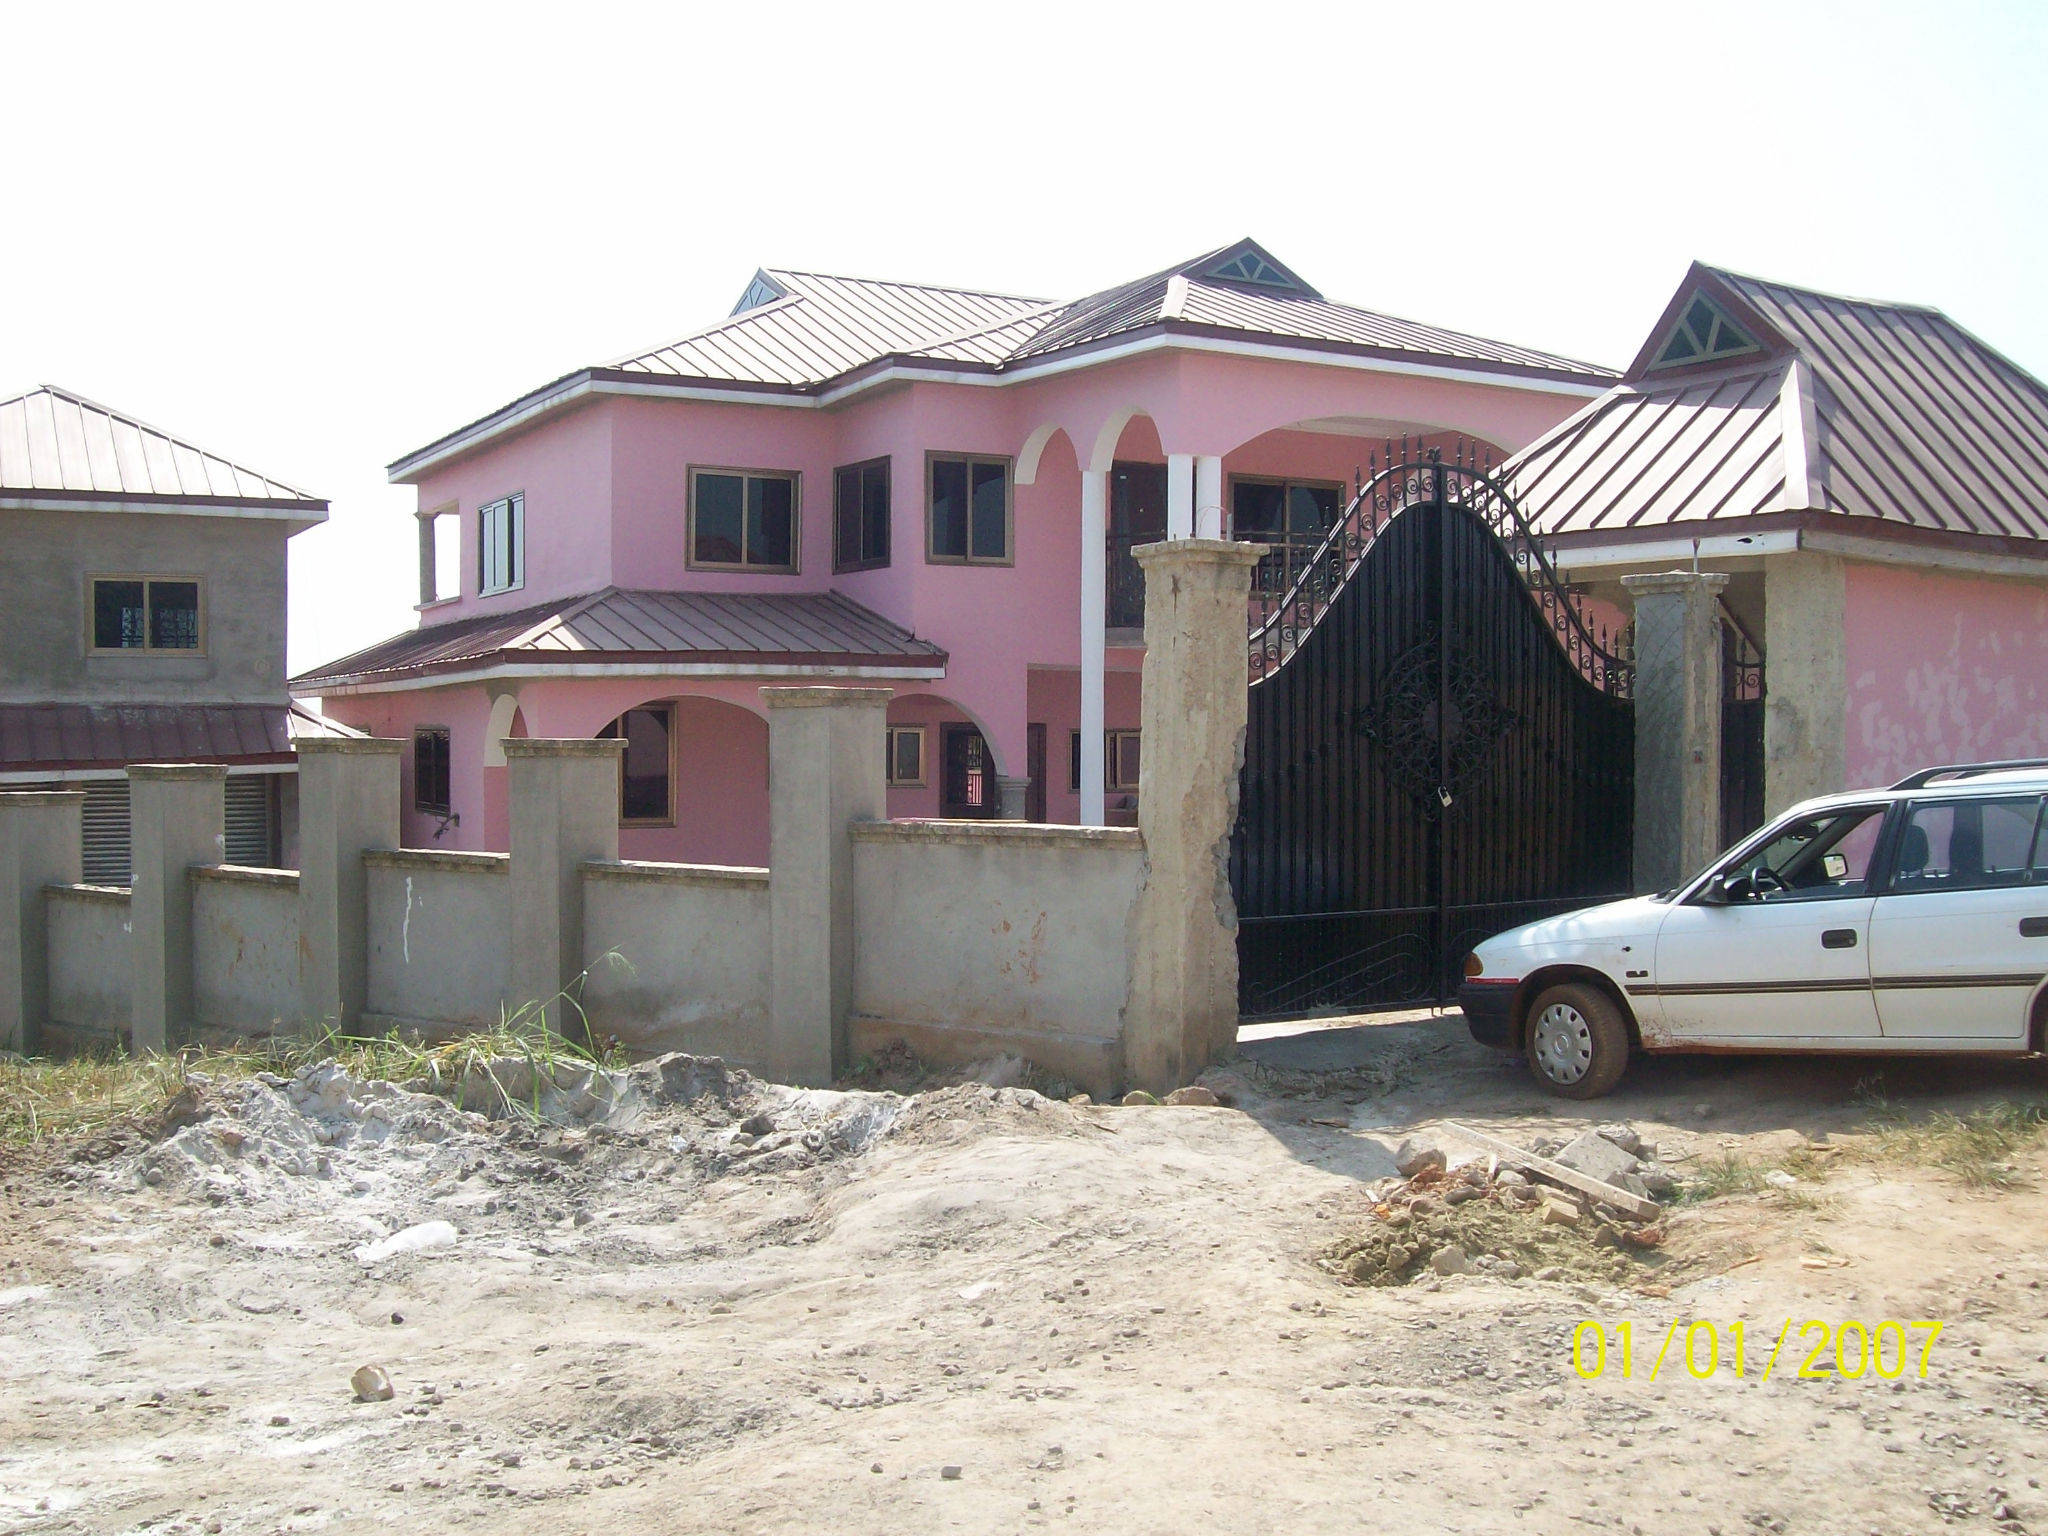 Palace Hypermarket In Accra Ghana furthermore Real Estate Ghana 3 Bedroom House Plans in addition YmVhdXRpZnVsIGdoYW5hIGxhbmRzY2FwZQ together with Ghana House Plans Estate also Ghana Nigeria Africa House Plan Blackcurrentbig. on houses in accra ghana africa